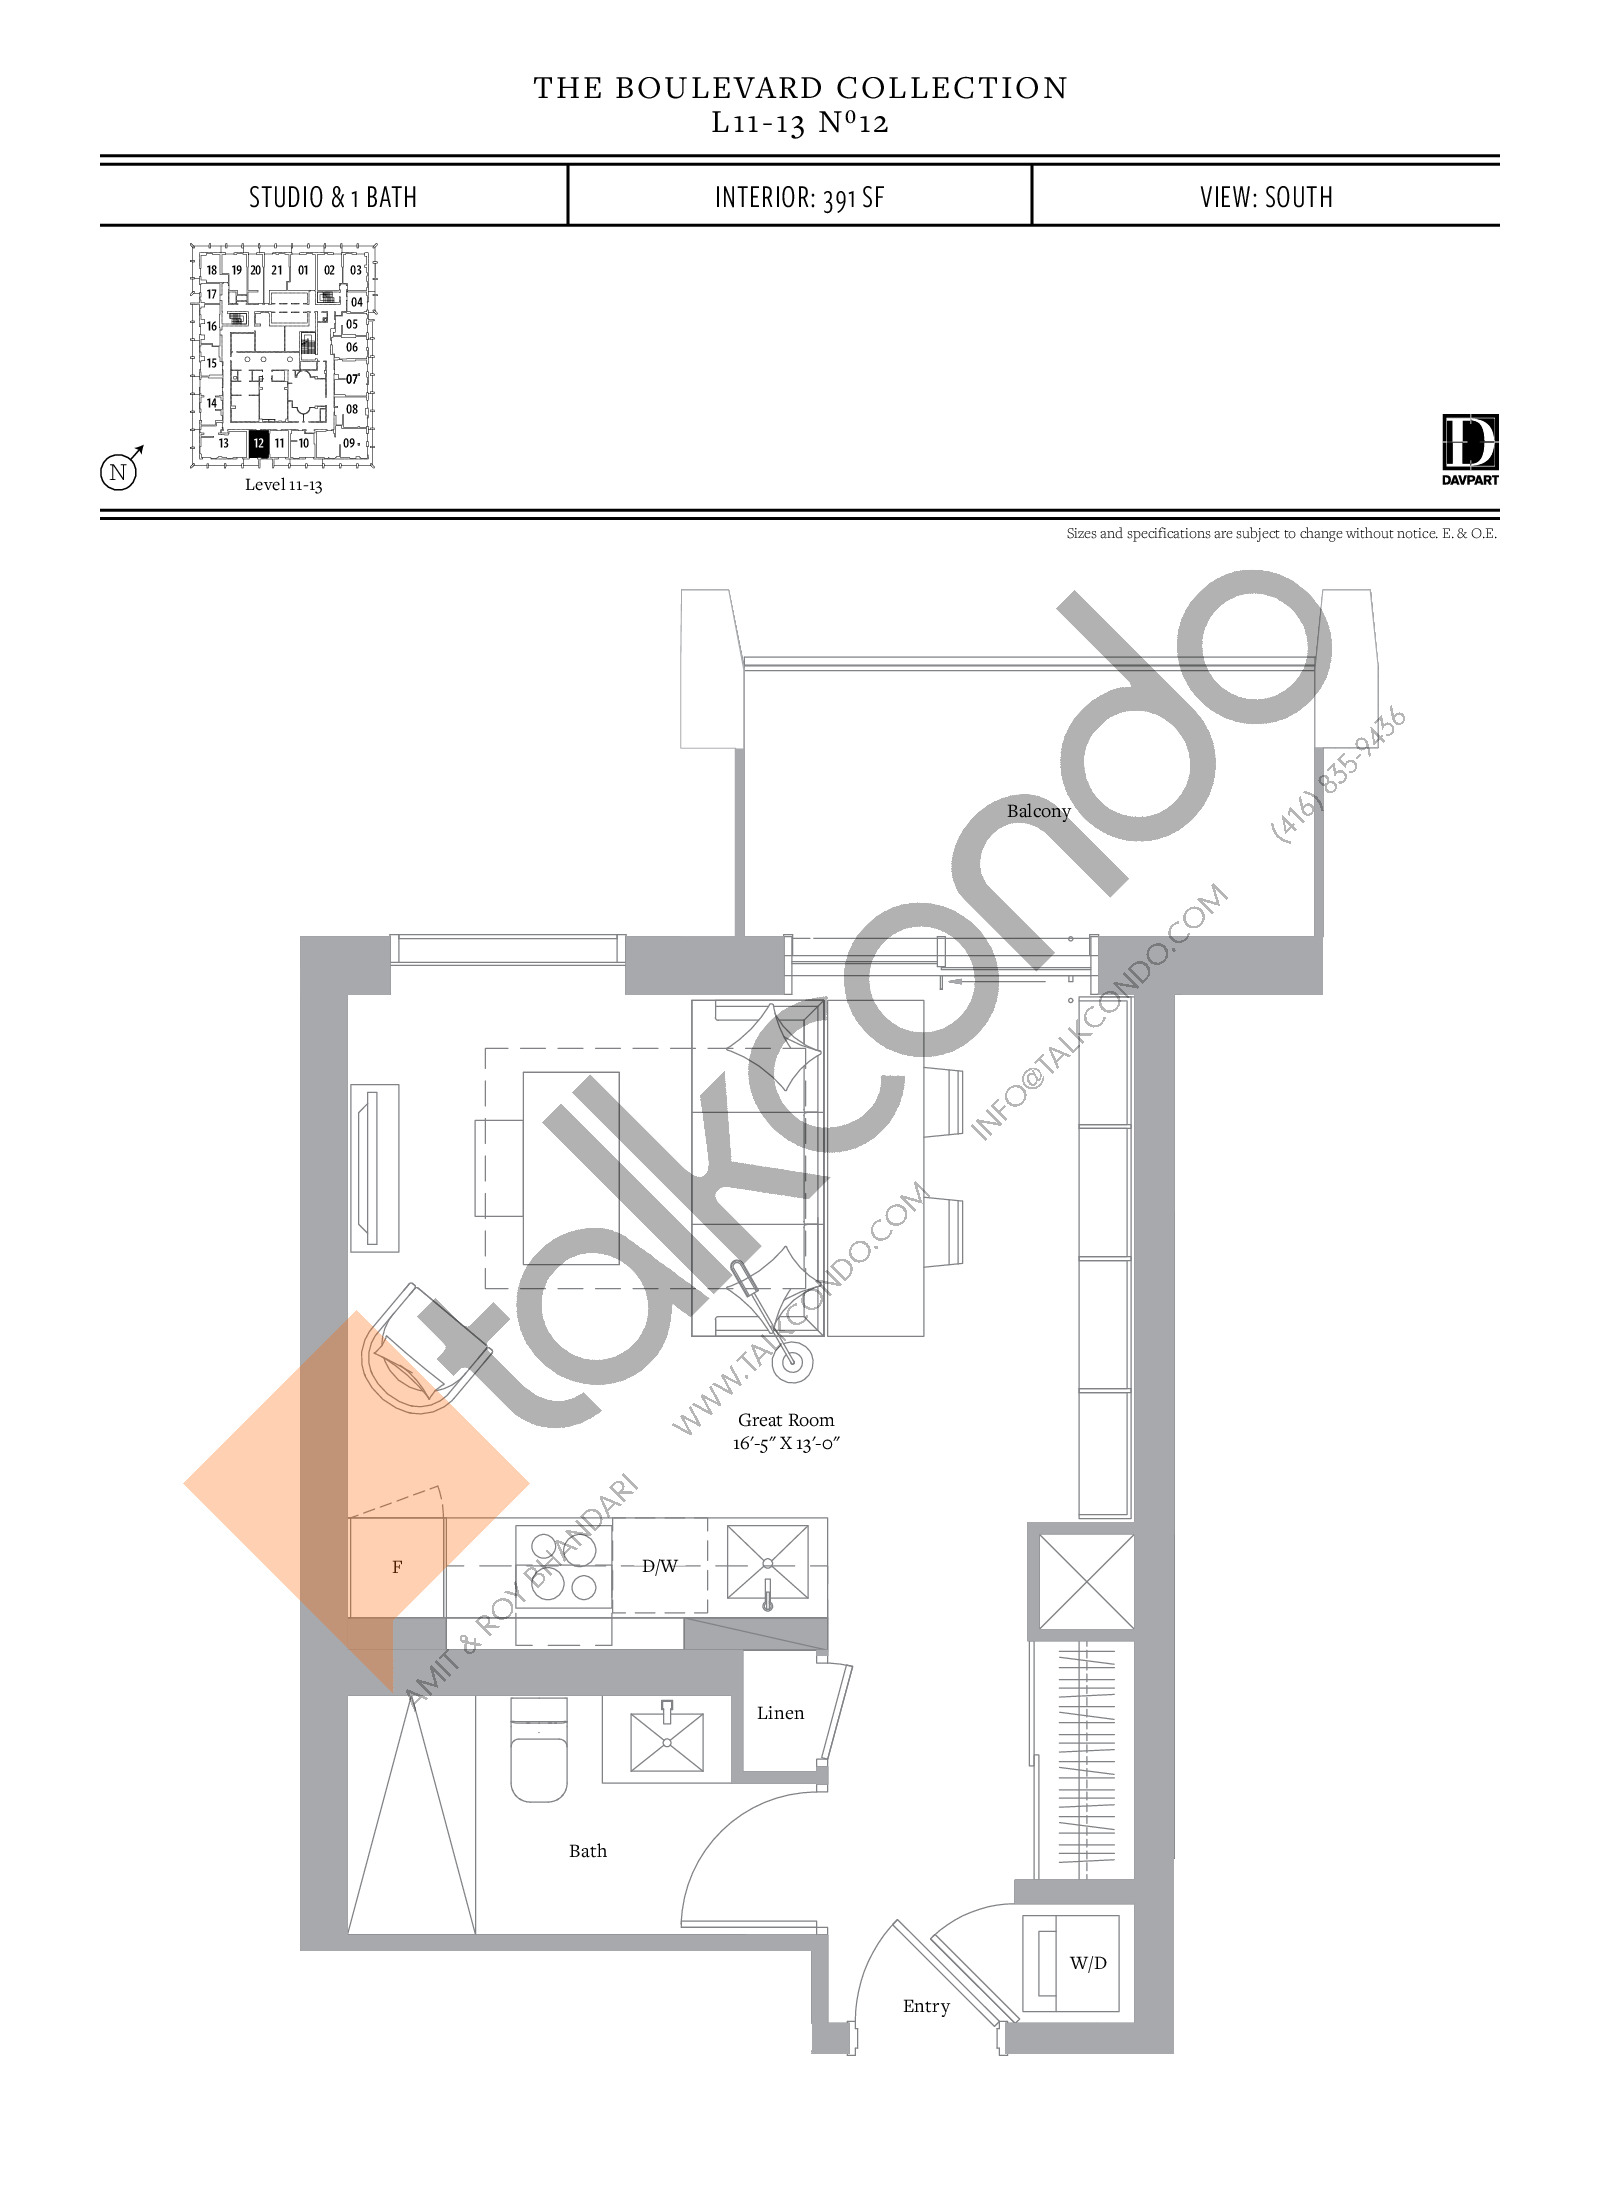 No 12 - The Boulevard Collection Floor Plan at The United Bldg. Condos - 391 sq.ft